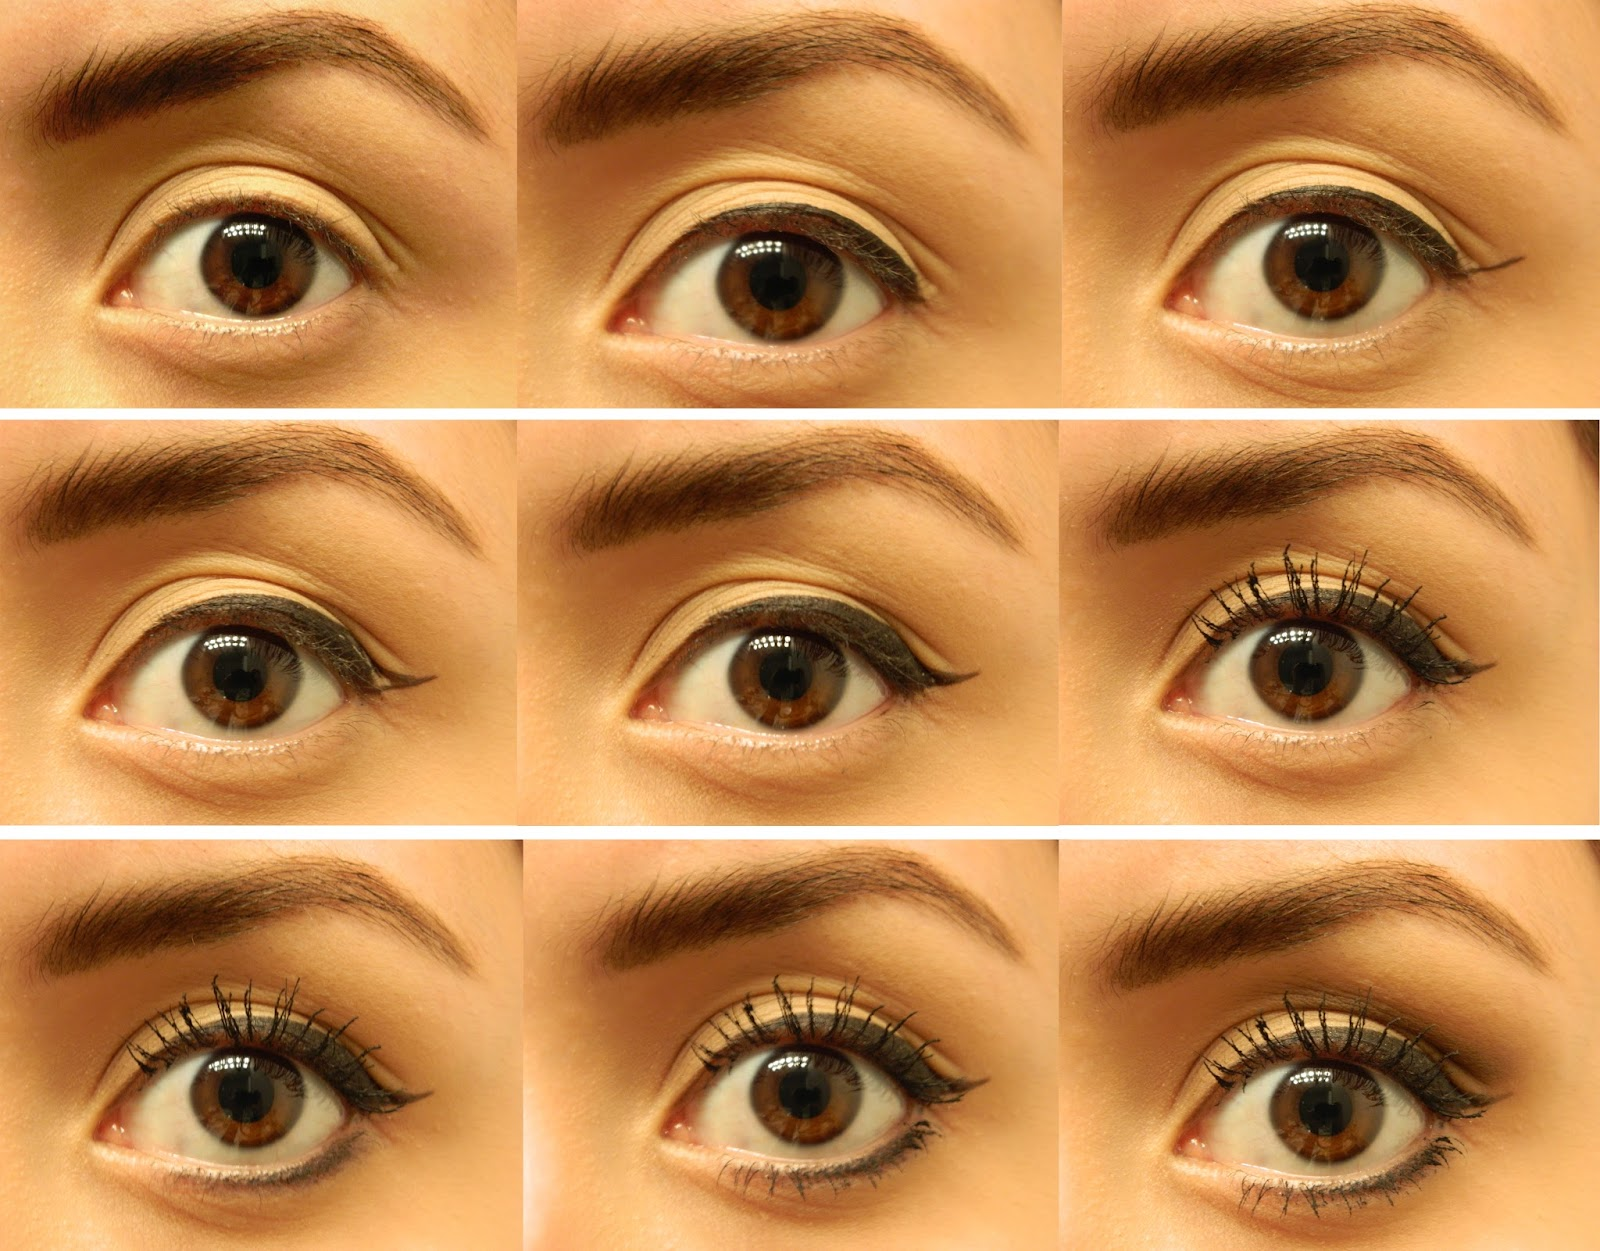 fashionaccro: Eye Makeup Step by Step Tutorial: Eye liner